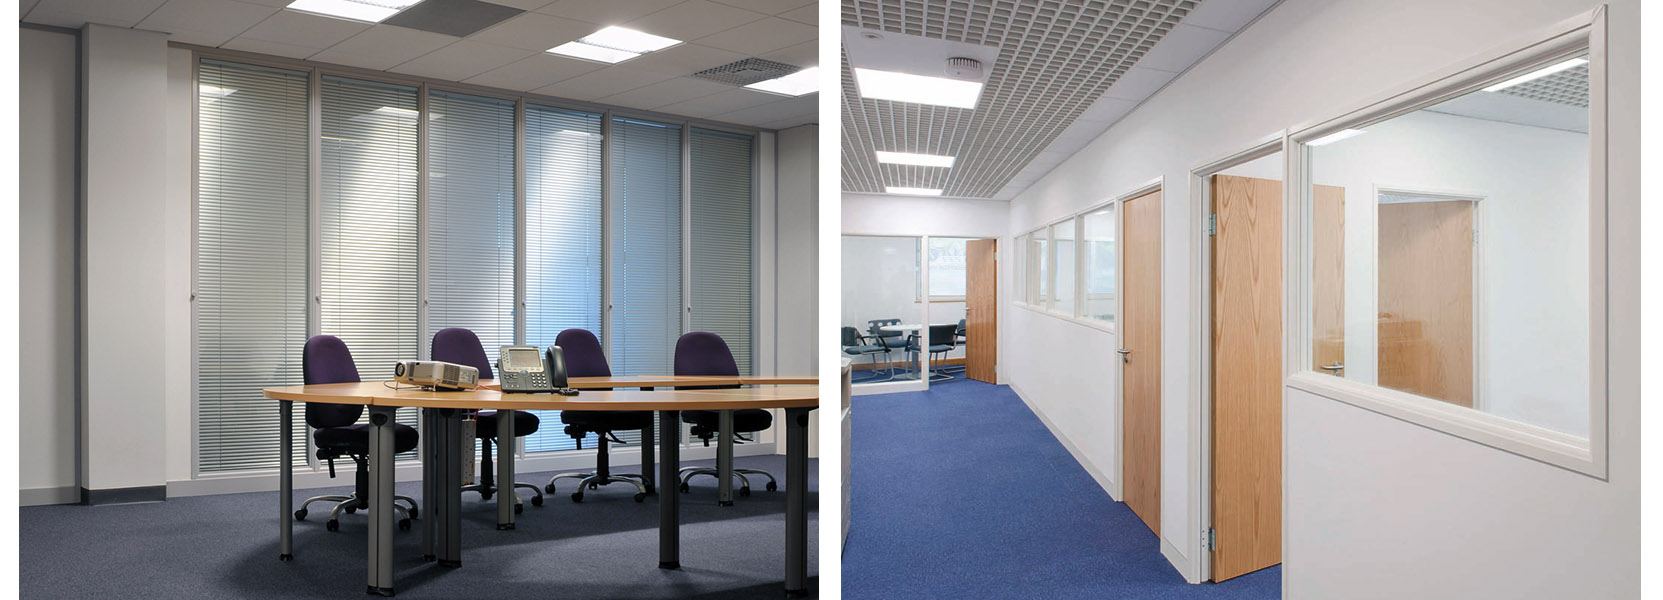 Longline 75 Partitioning System